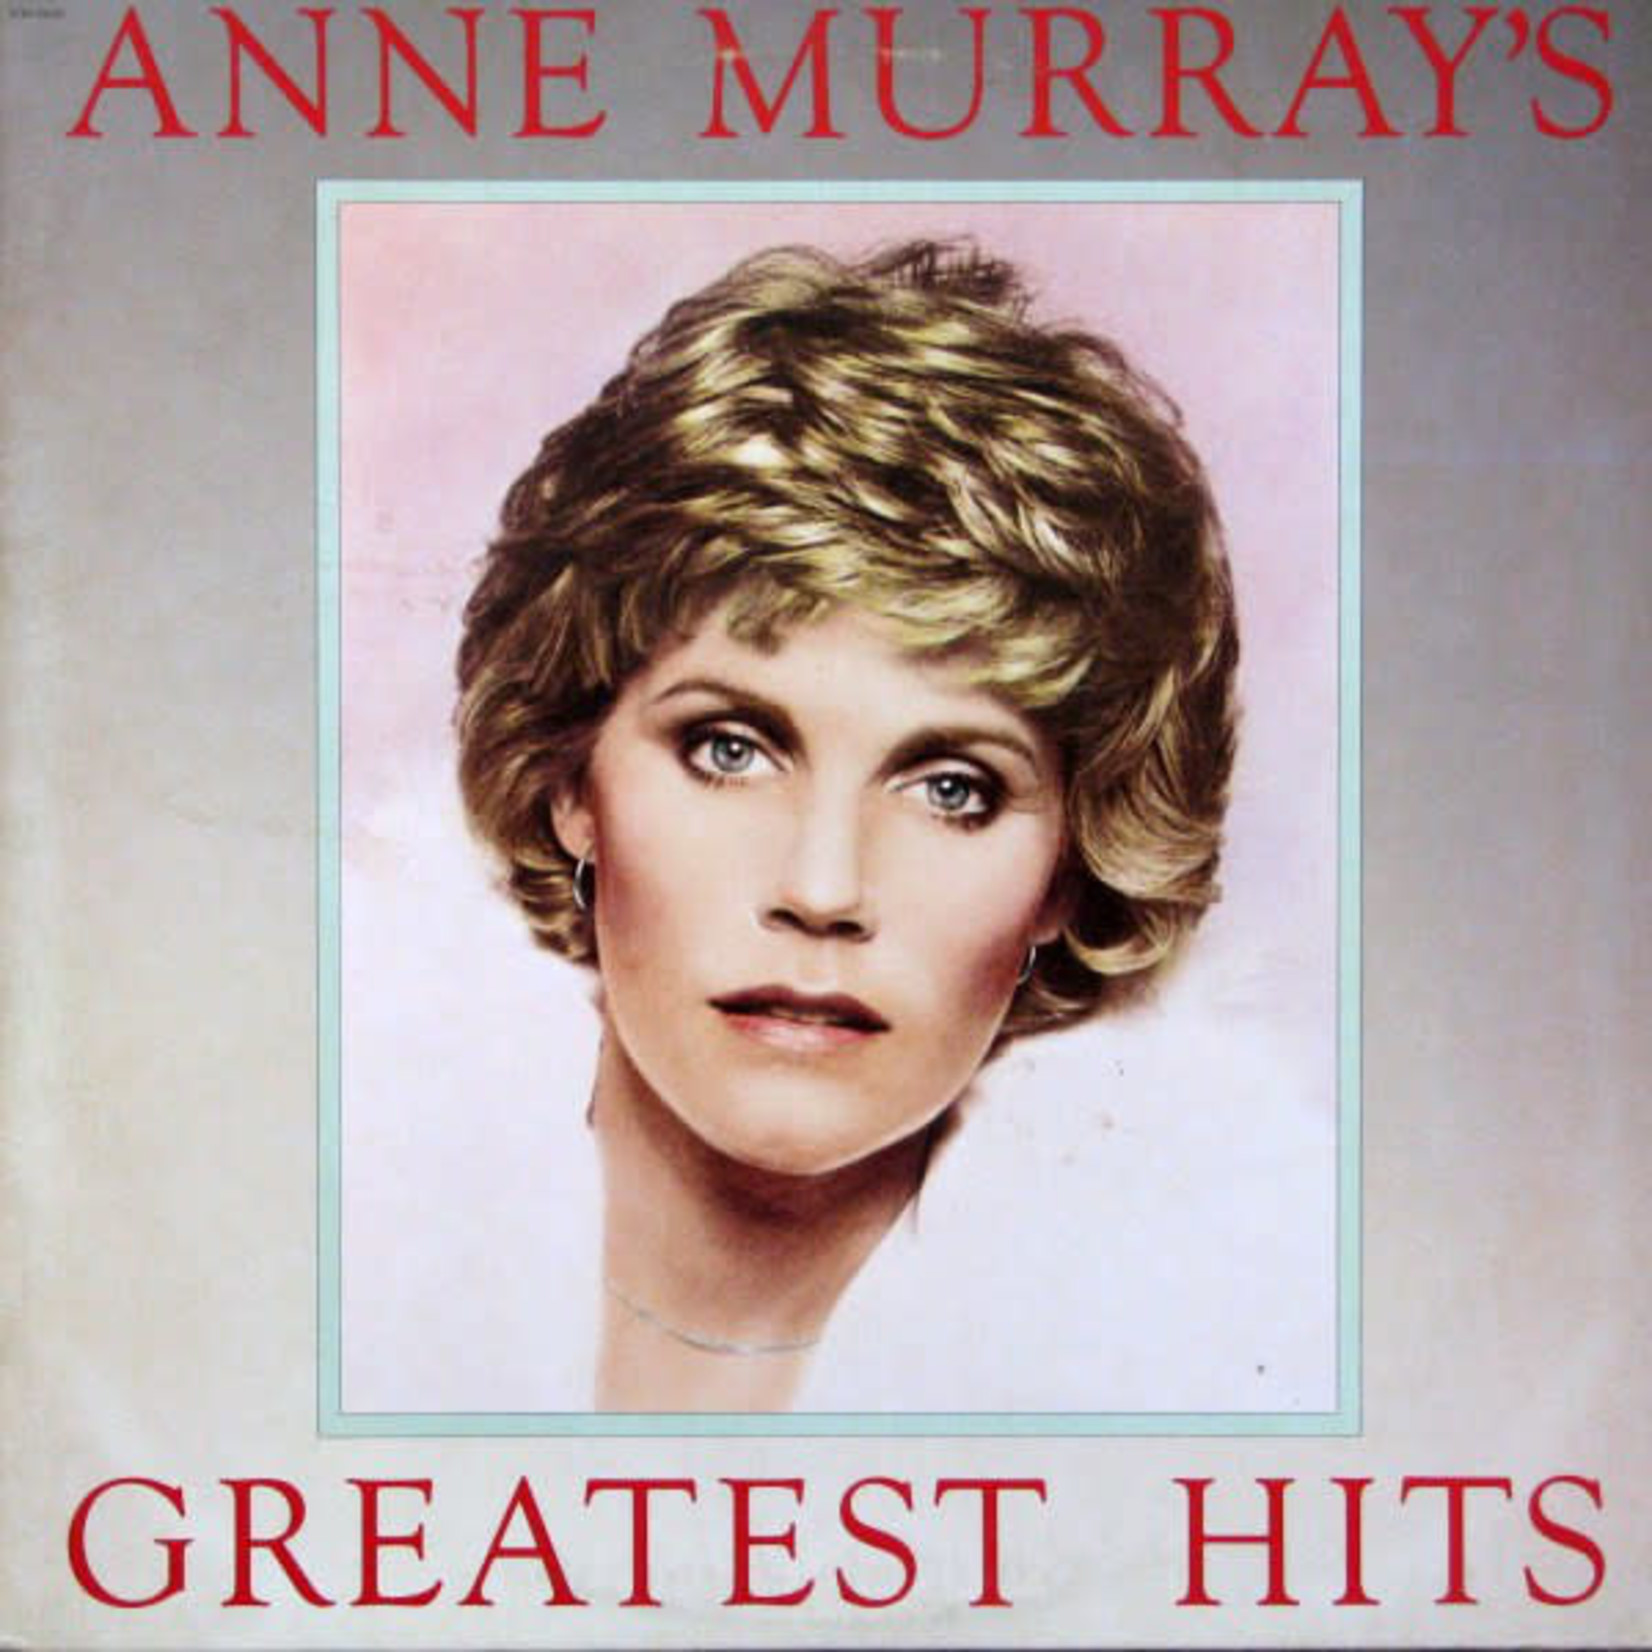 [Vintage] Murray, Anne: Greatest Hits